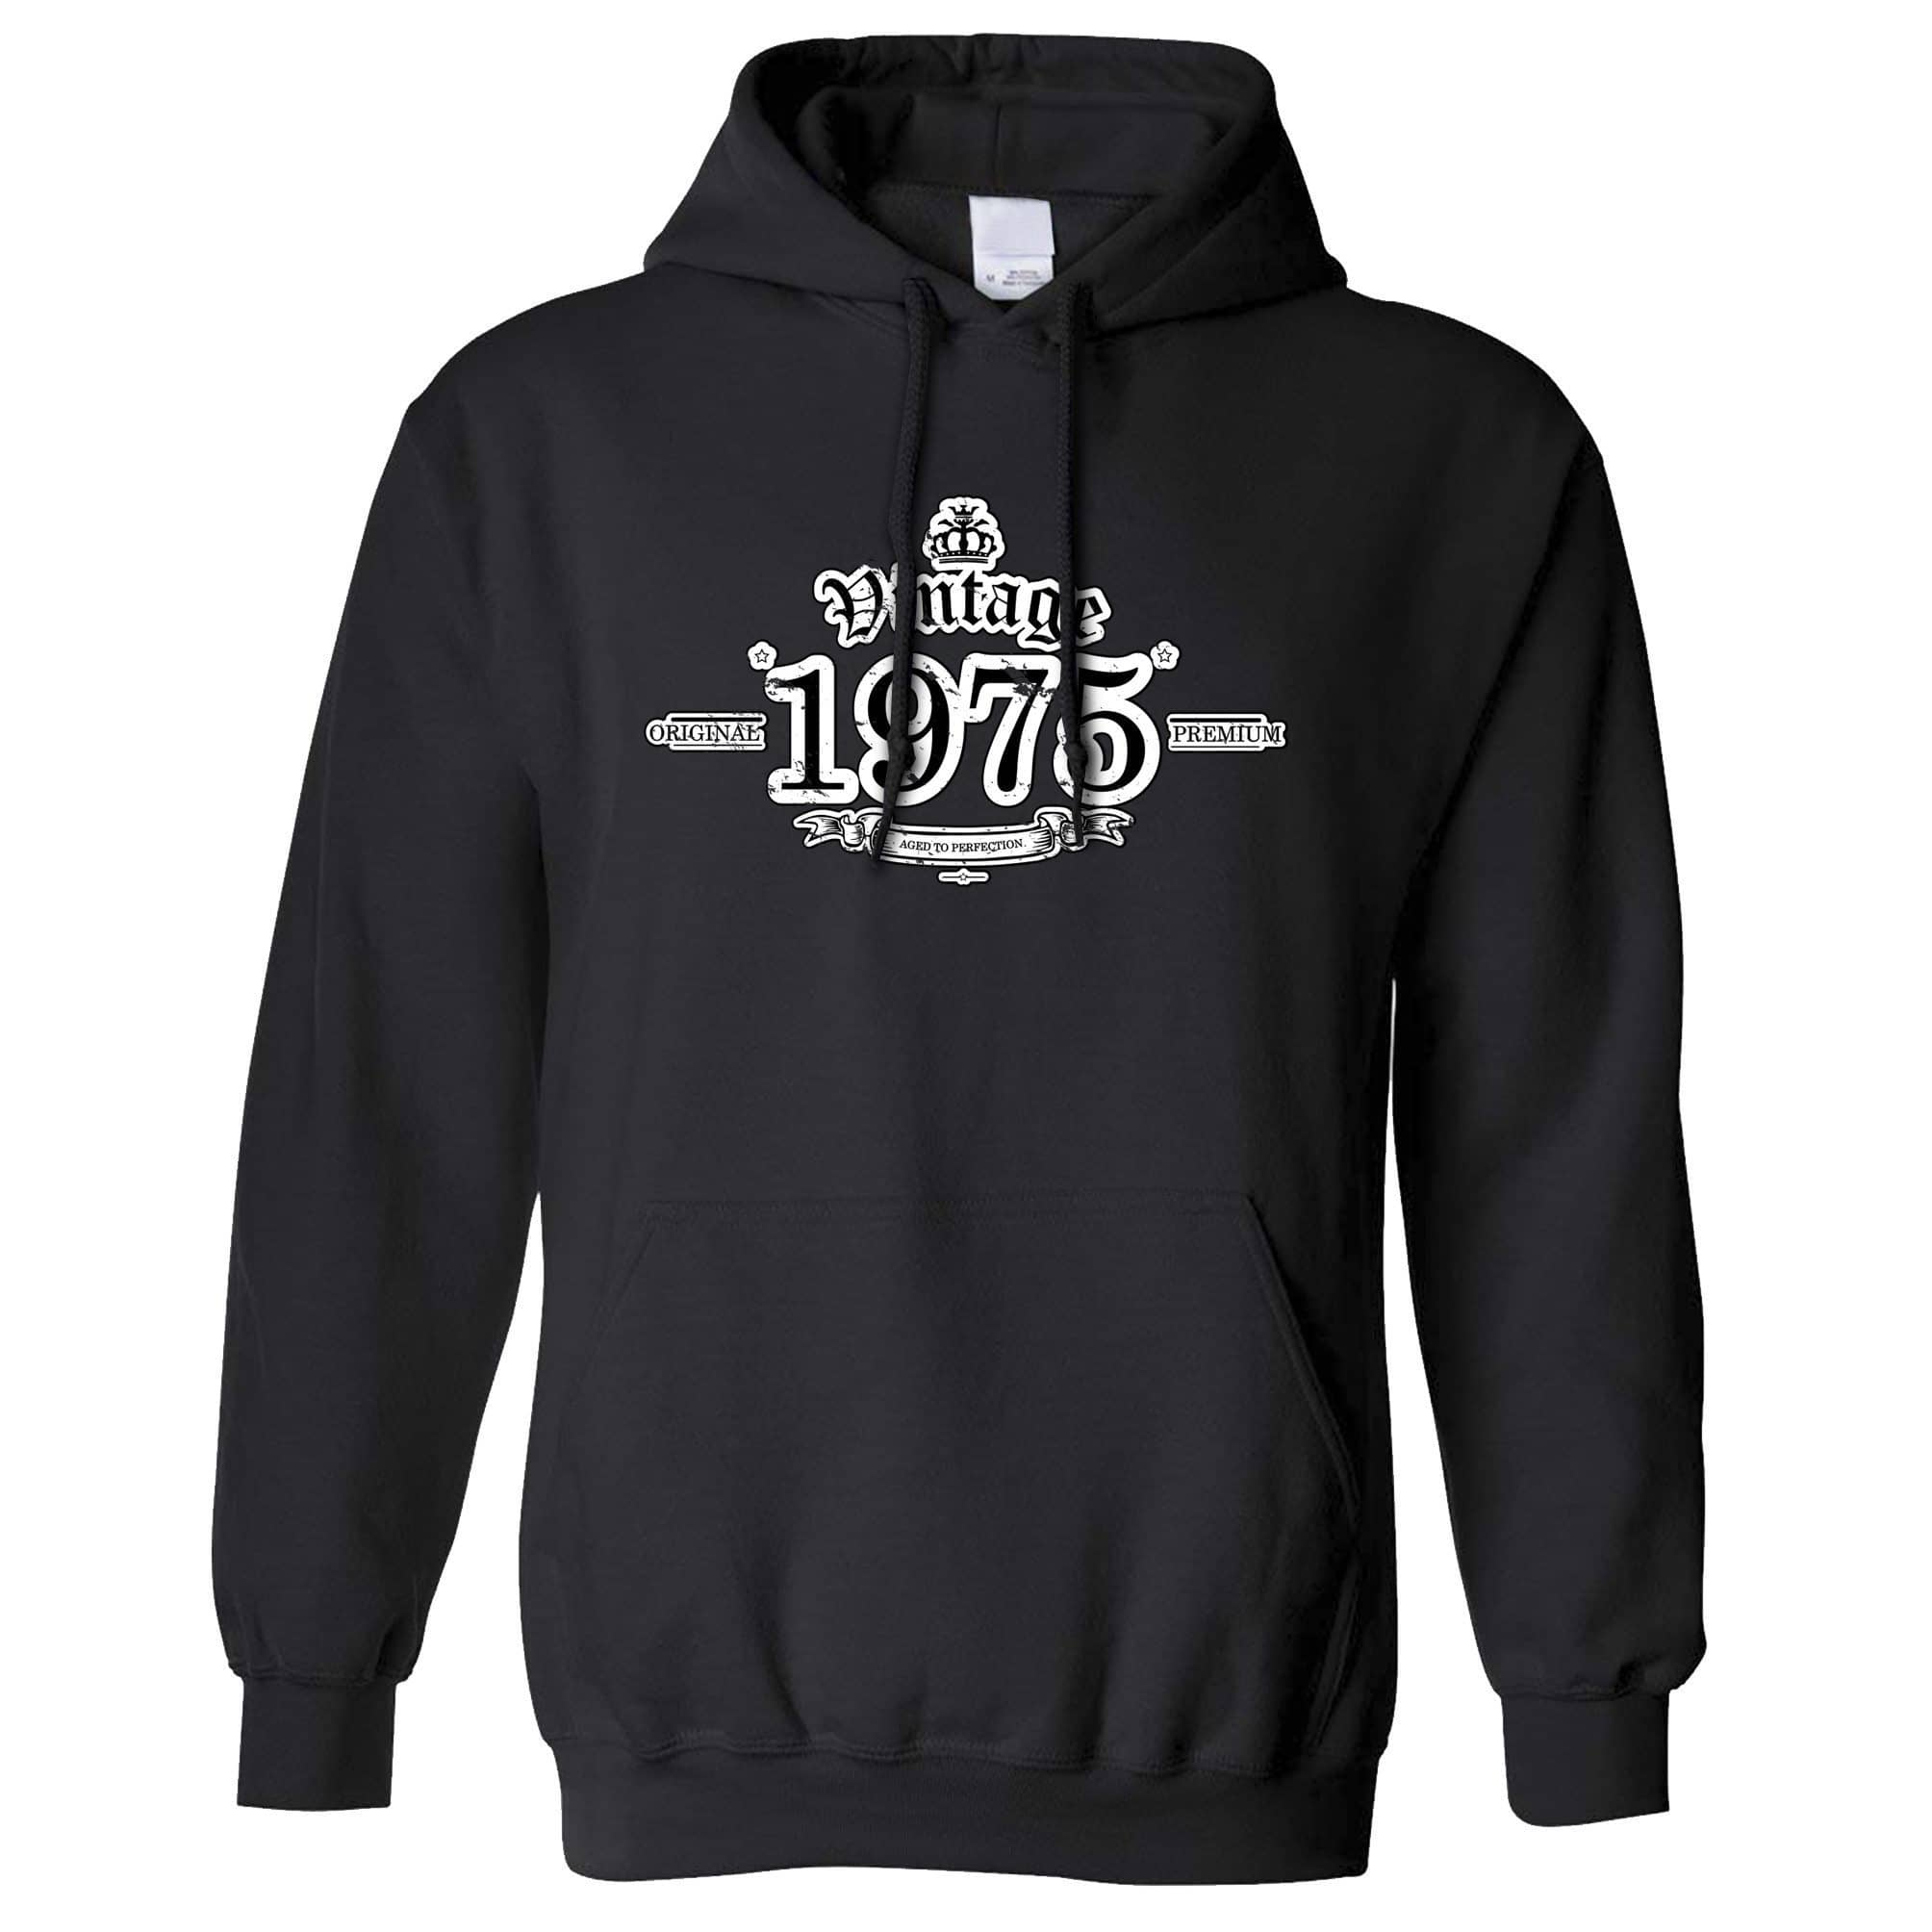 43rd Birthday Hoodie Vintage 1975 Aged To Perfection Hooded Jumper